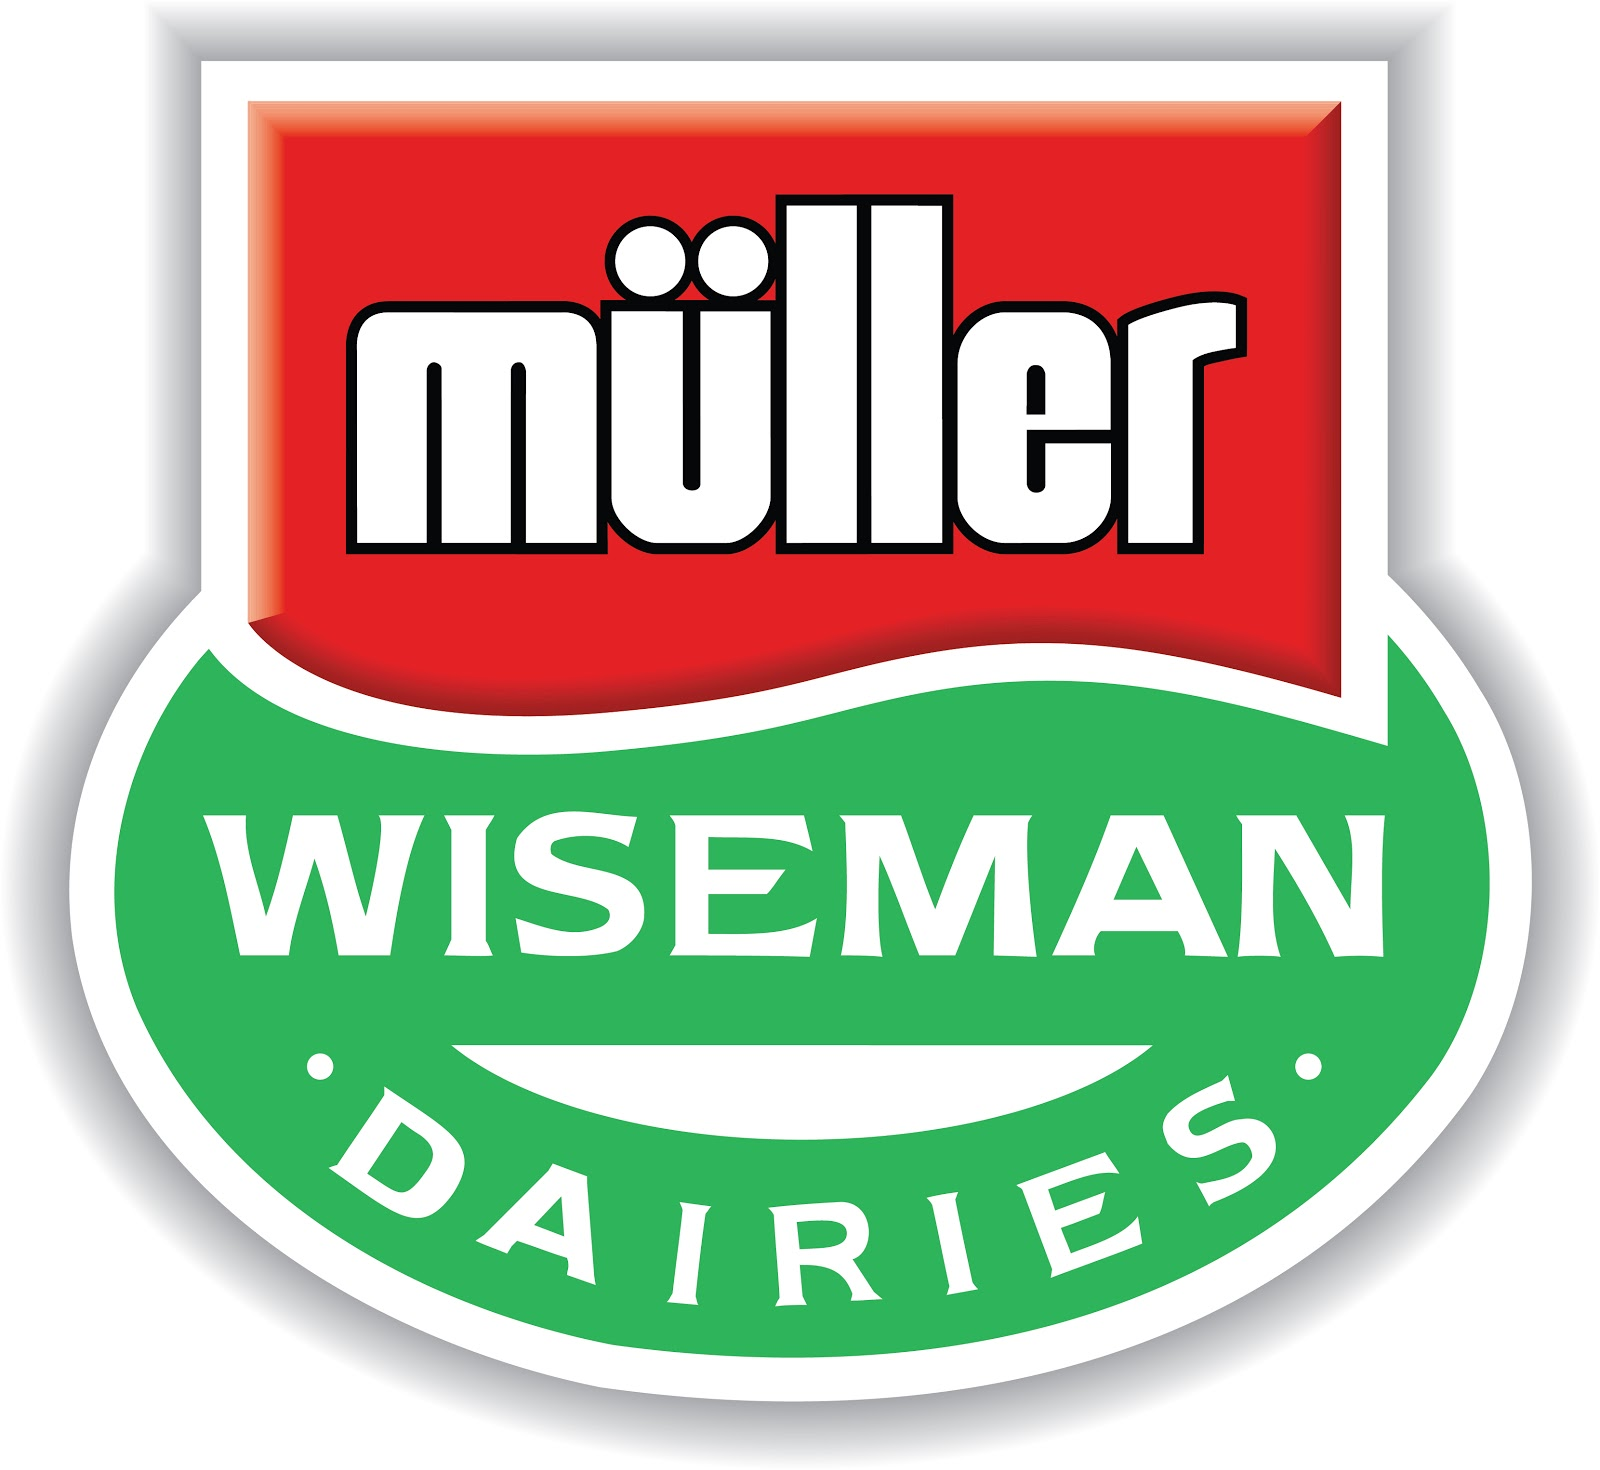 Muller-wiseman-logo_FINAL_V3_aw_A  MÜLLER OPTIMISTIC FOR THE FUTURE AT FORMAL OPENING OF £17M BUTTER PLANT Muller wiseman logo FINAL V3 aw A